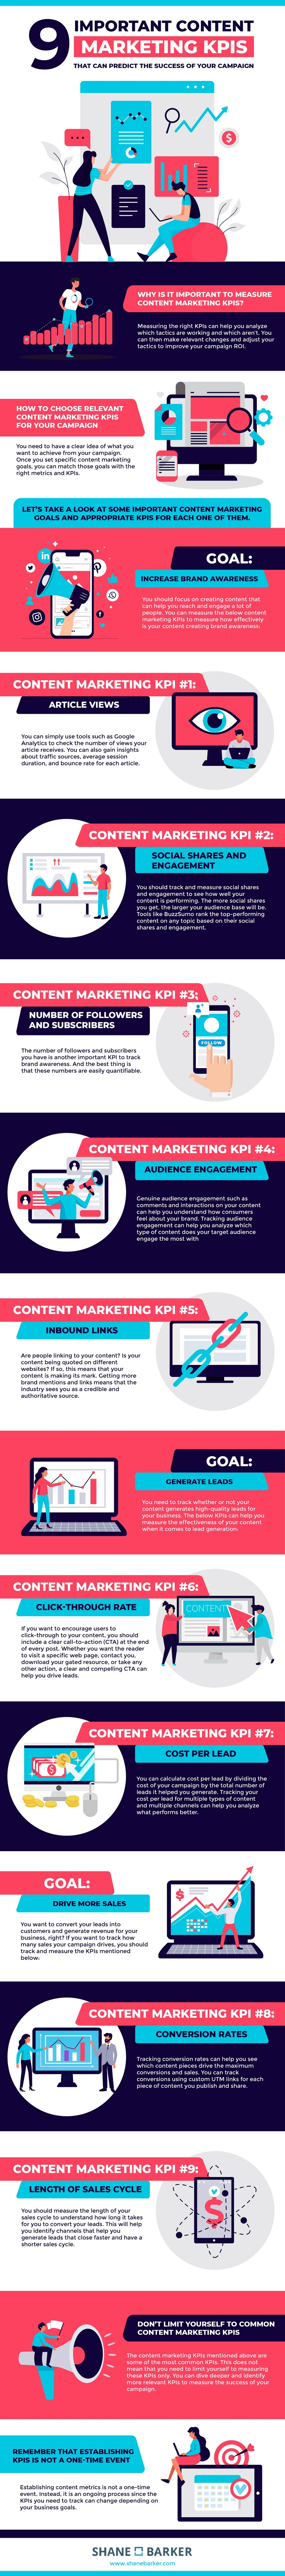 9-important-content-marketing-kpis-that-can-predict-the-success-of-your-campaign-updated-april-2020-infographic